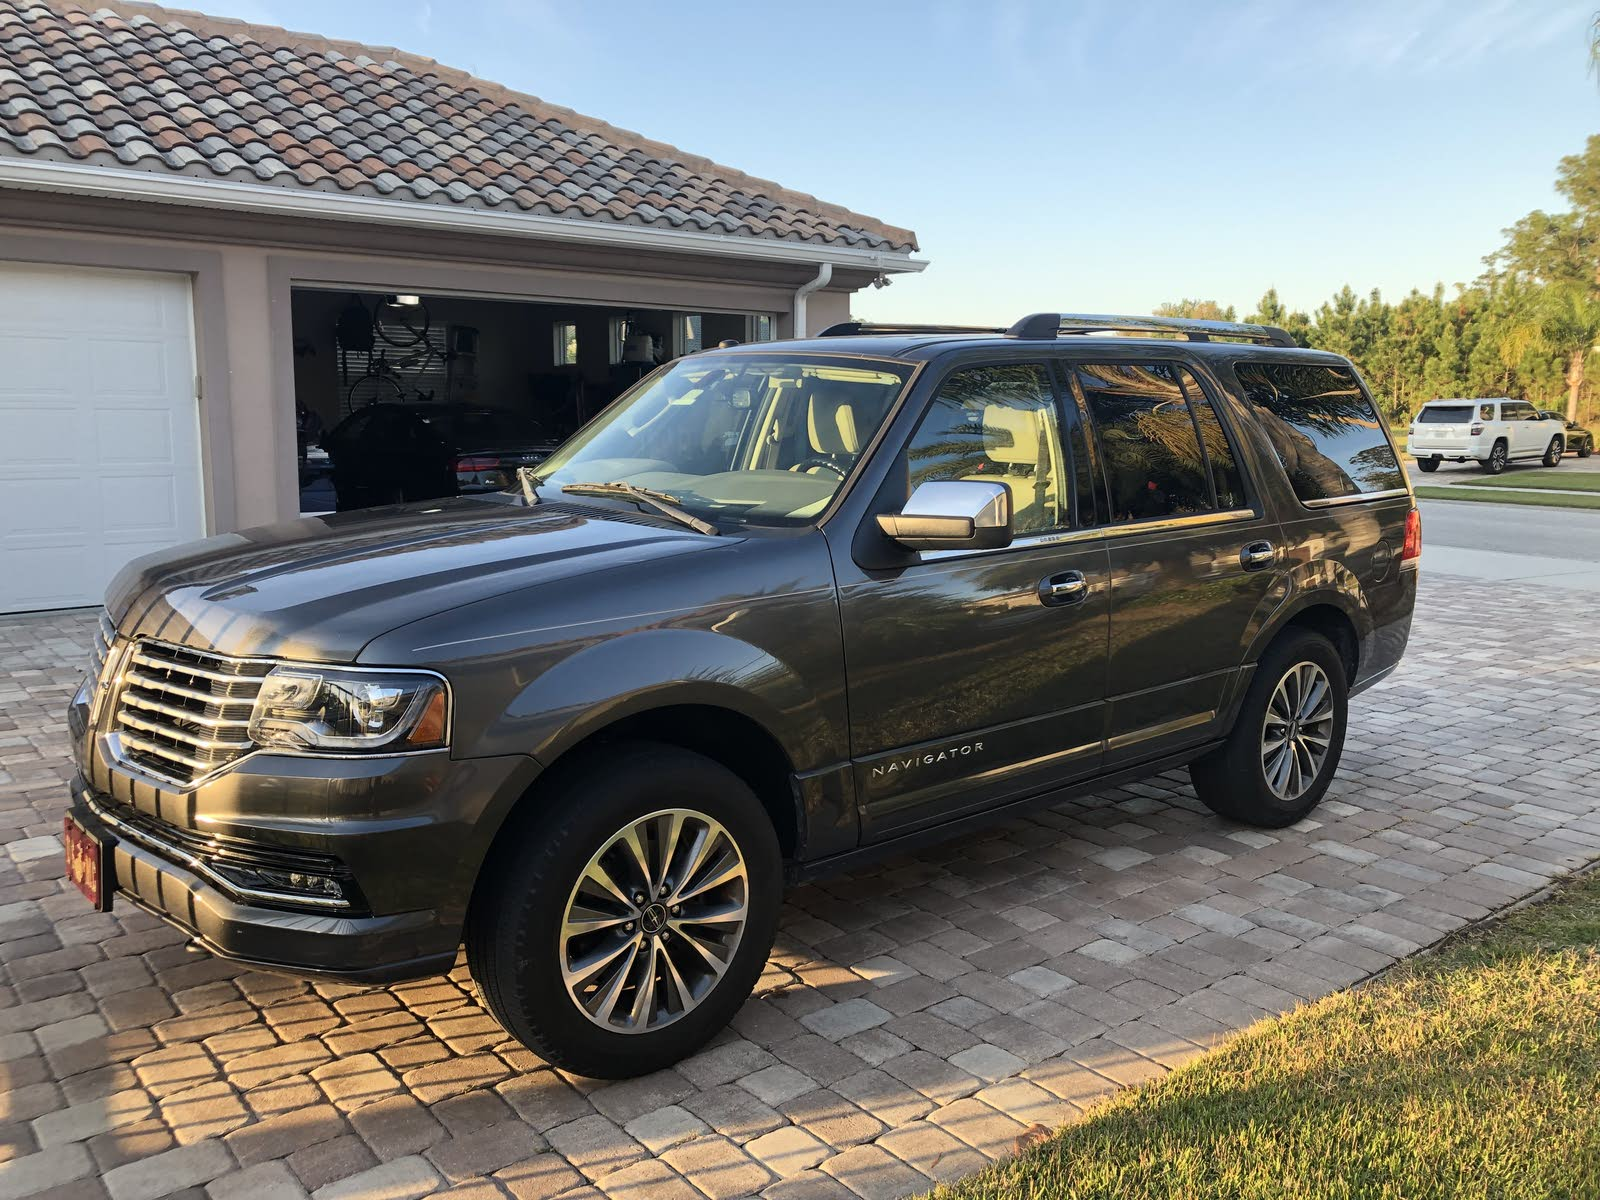 2017 Lincoln Navigator - Overview - CarGurus